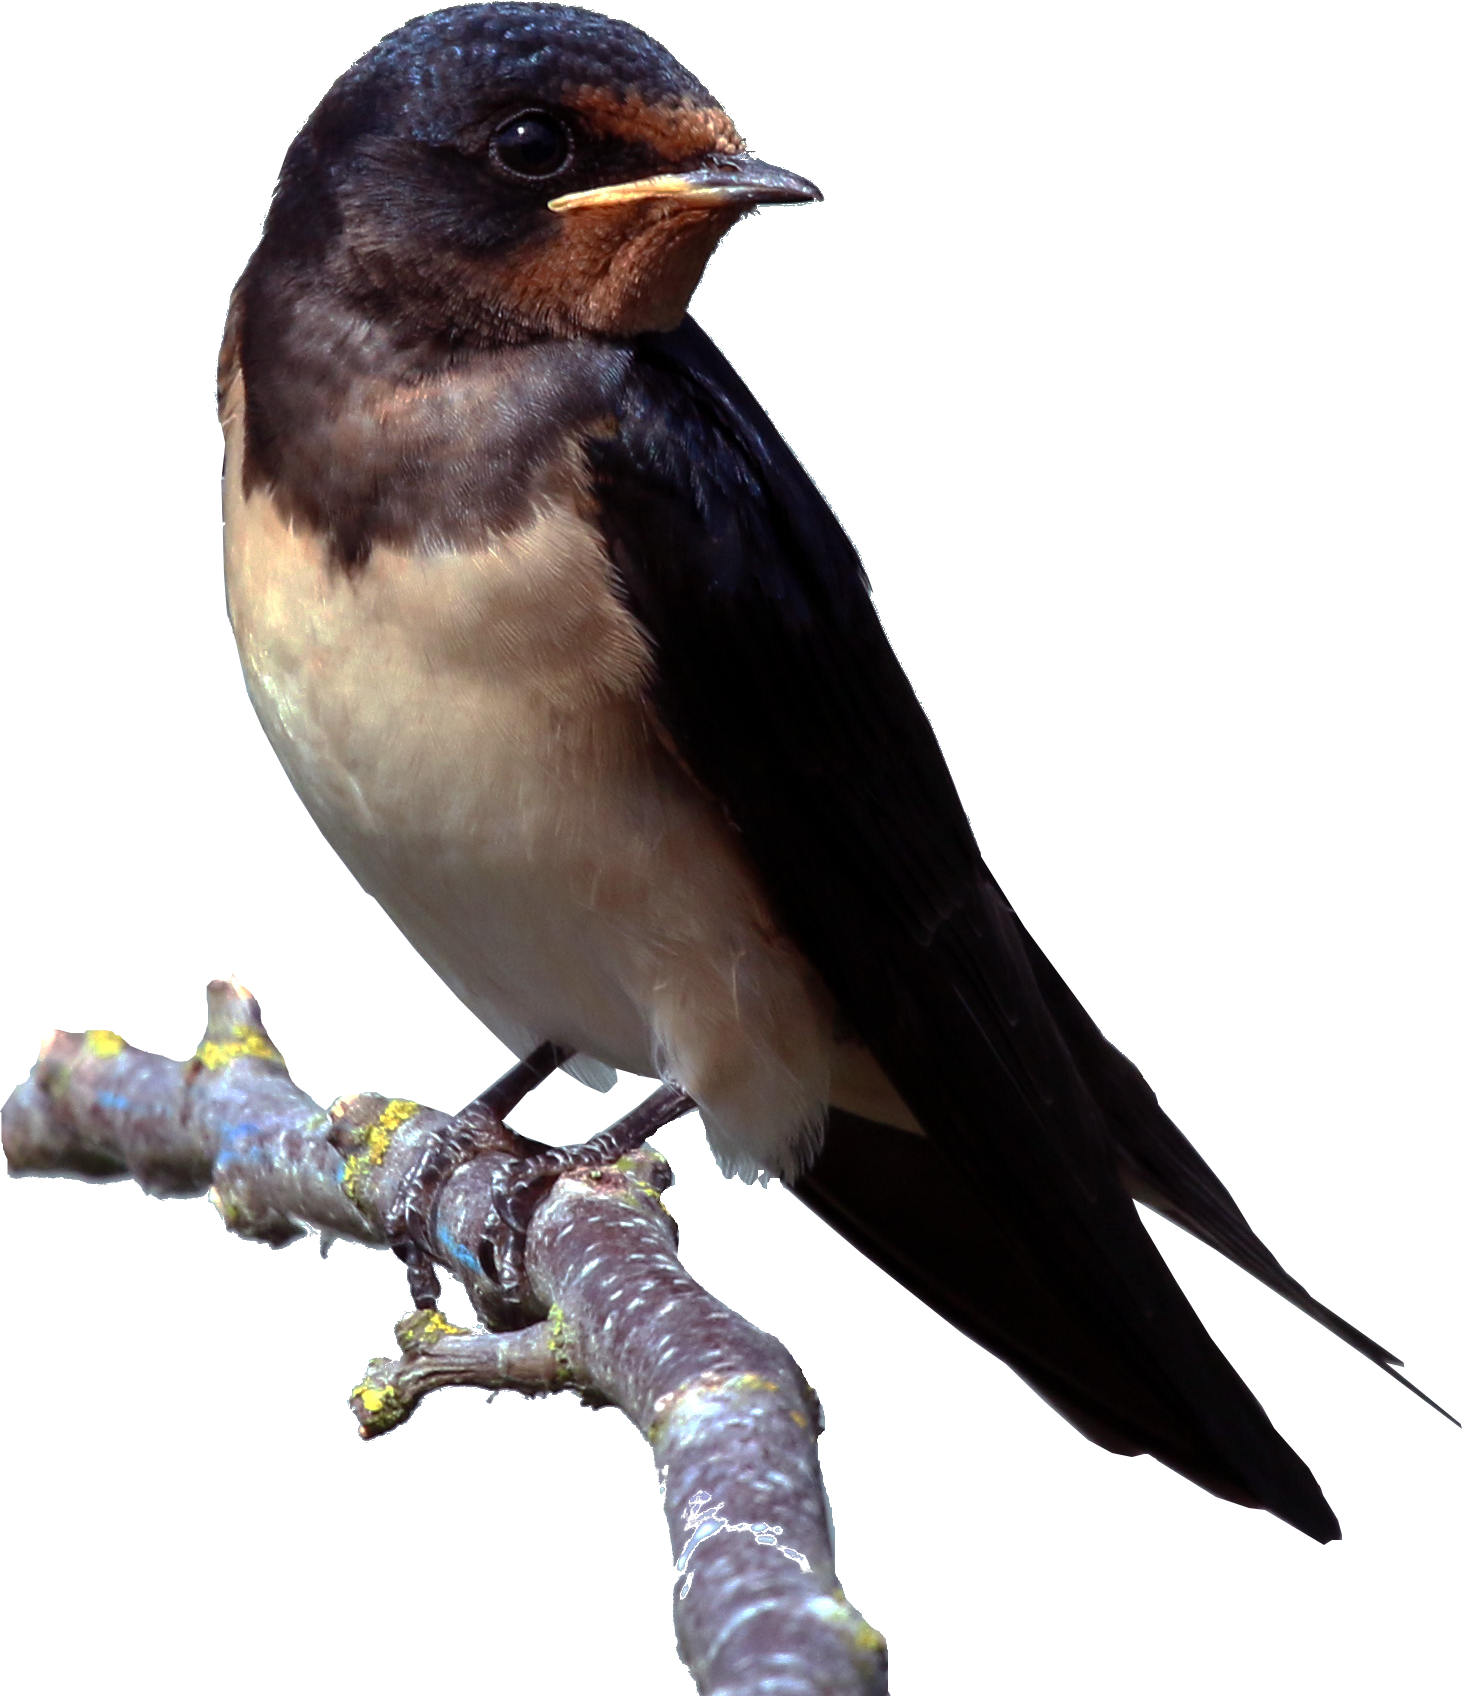 Swallow Png - Download Barn Swallow PNG Clipart - Free Transparent PNG Images ...